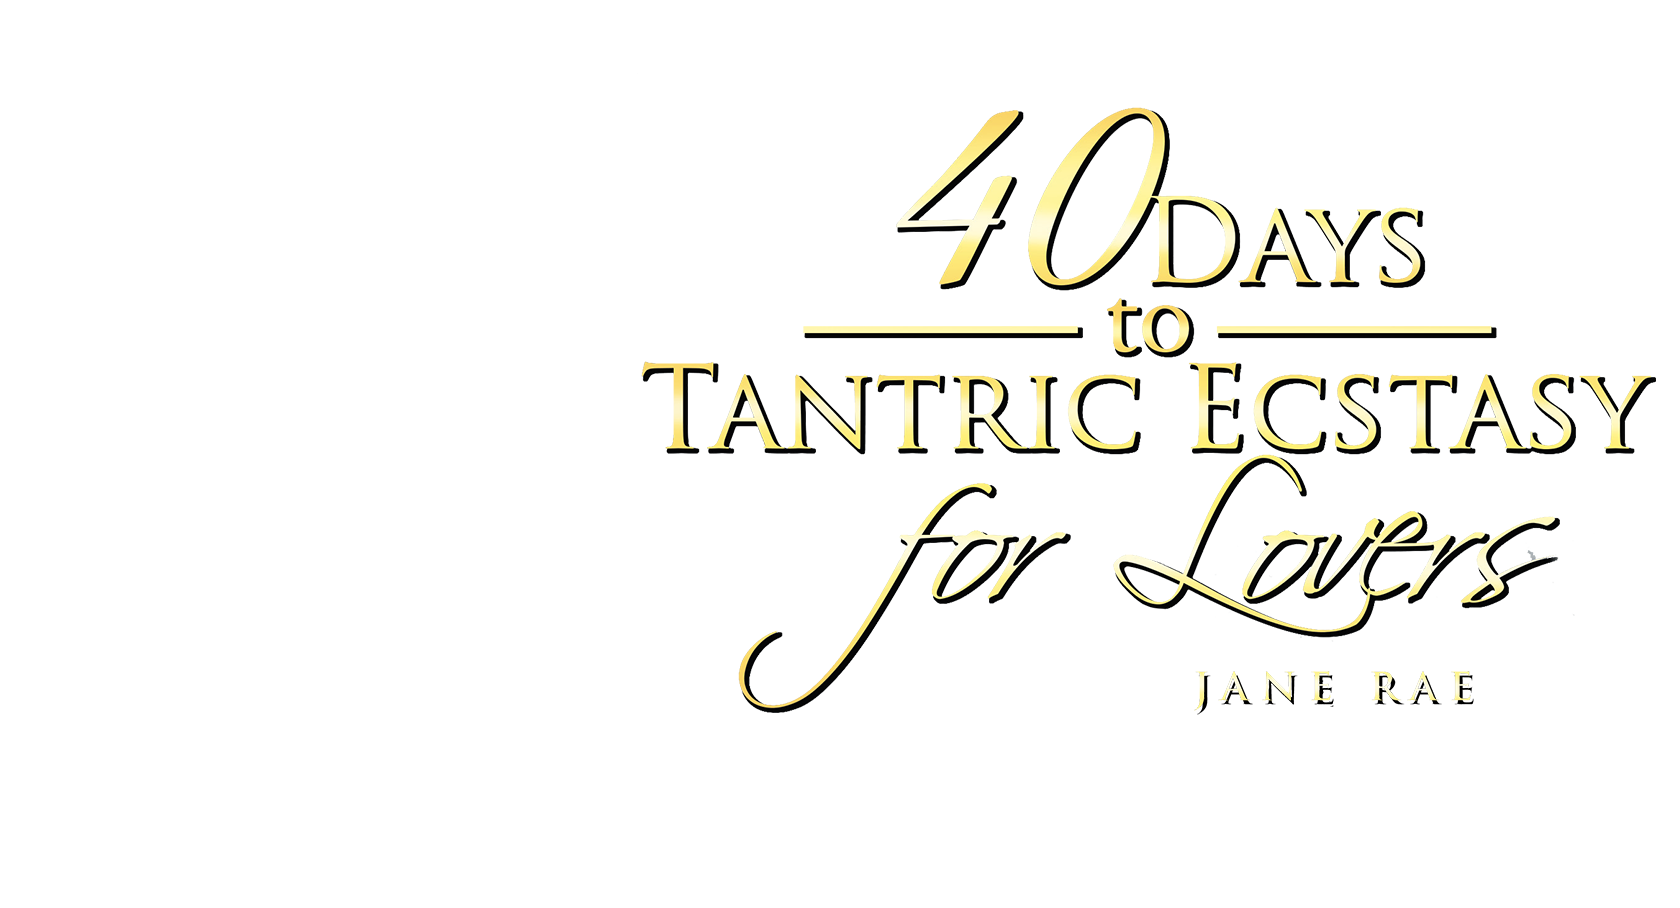 40 Days to Tantric Ecstasy for Lovers